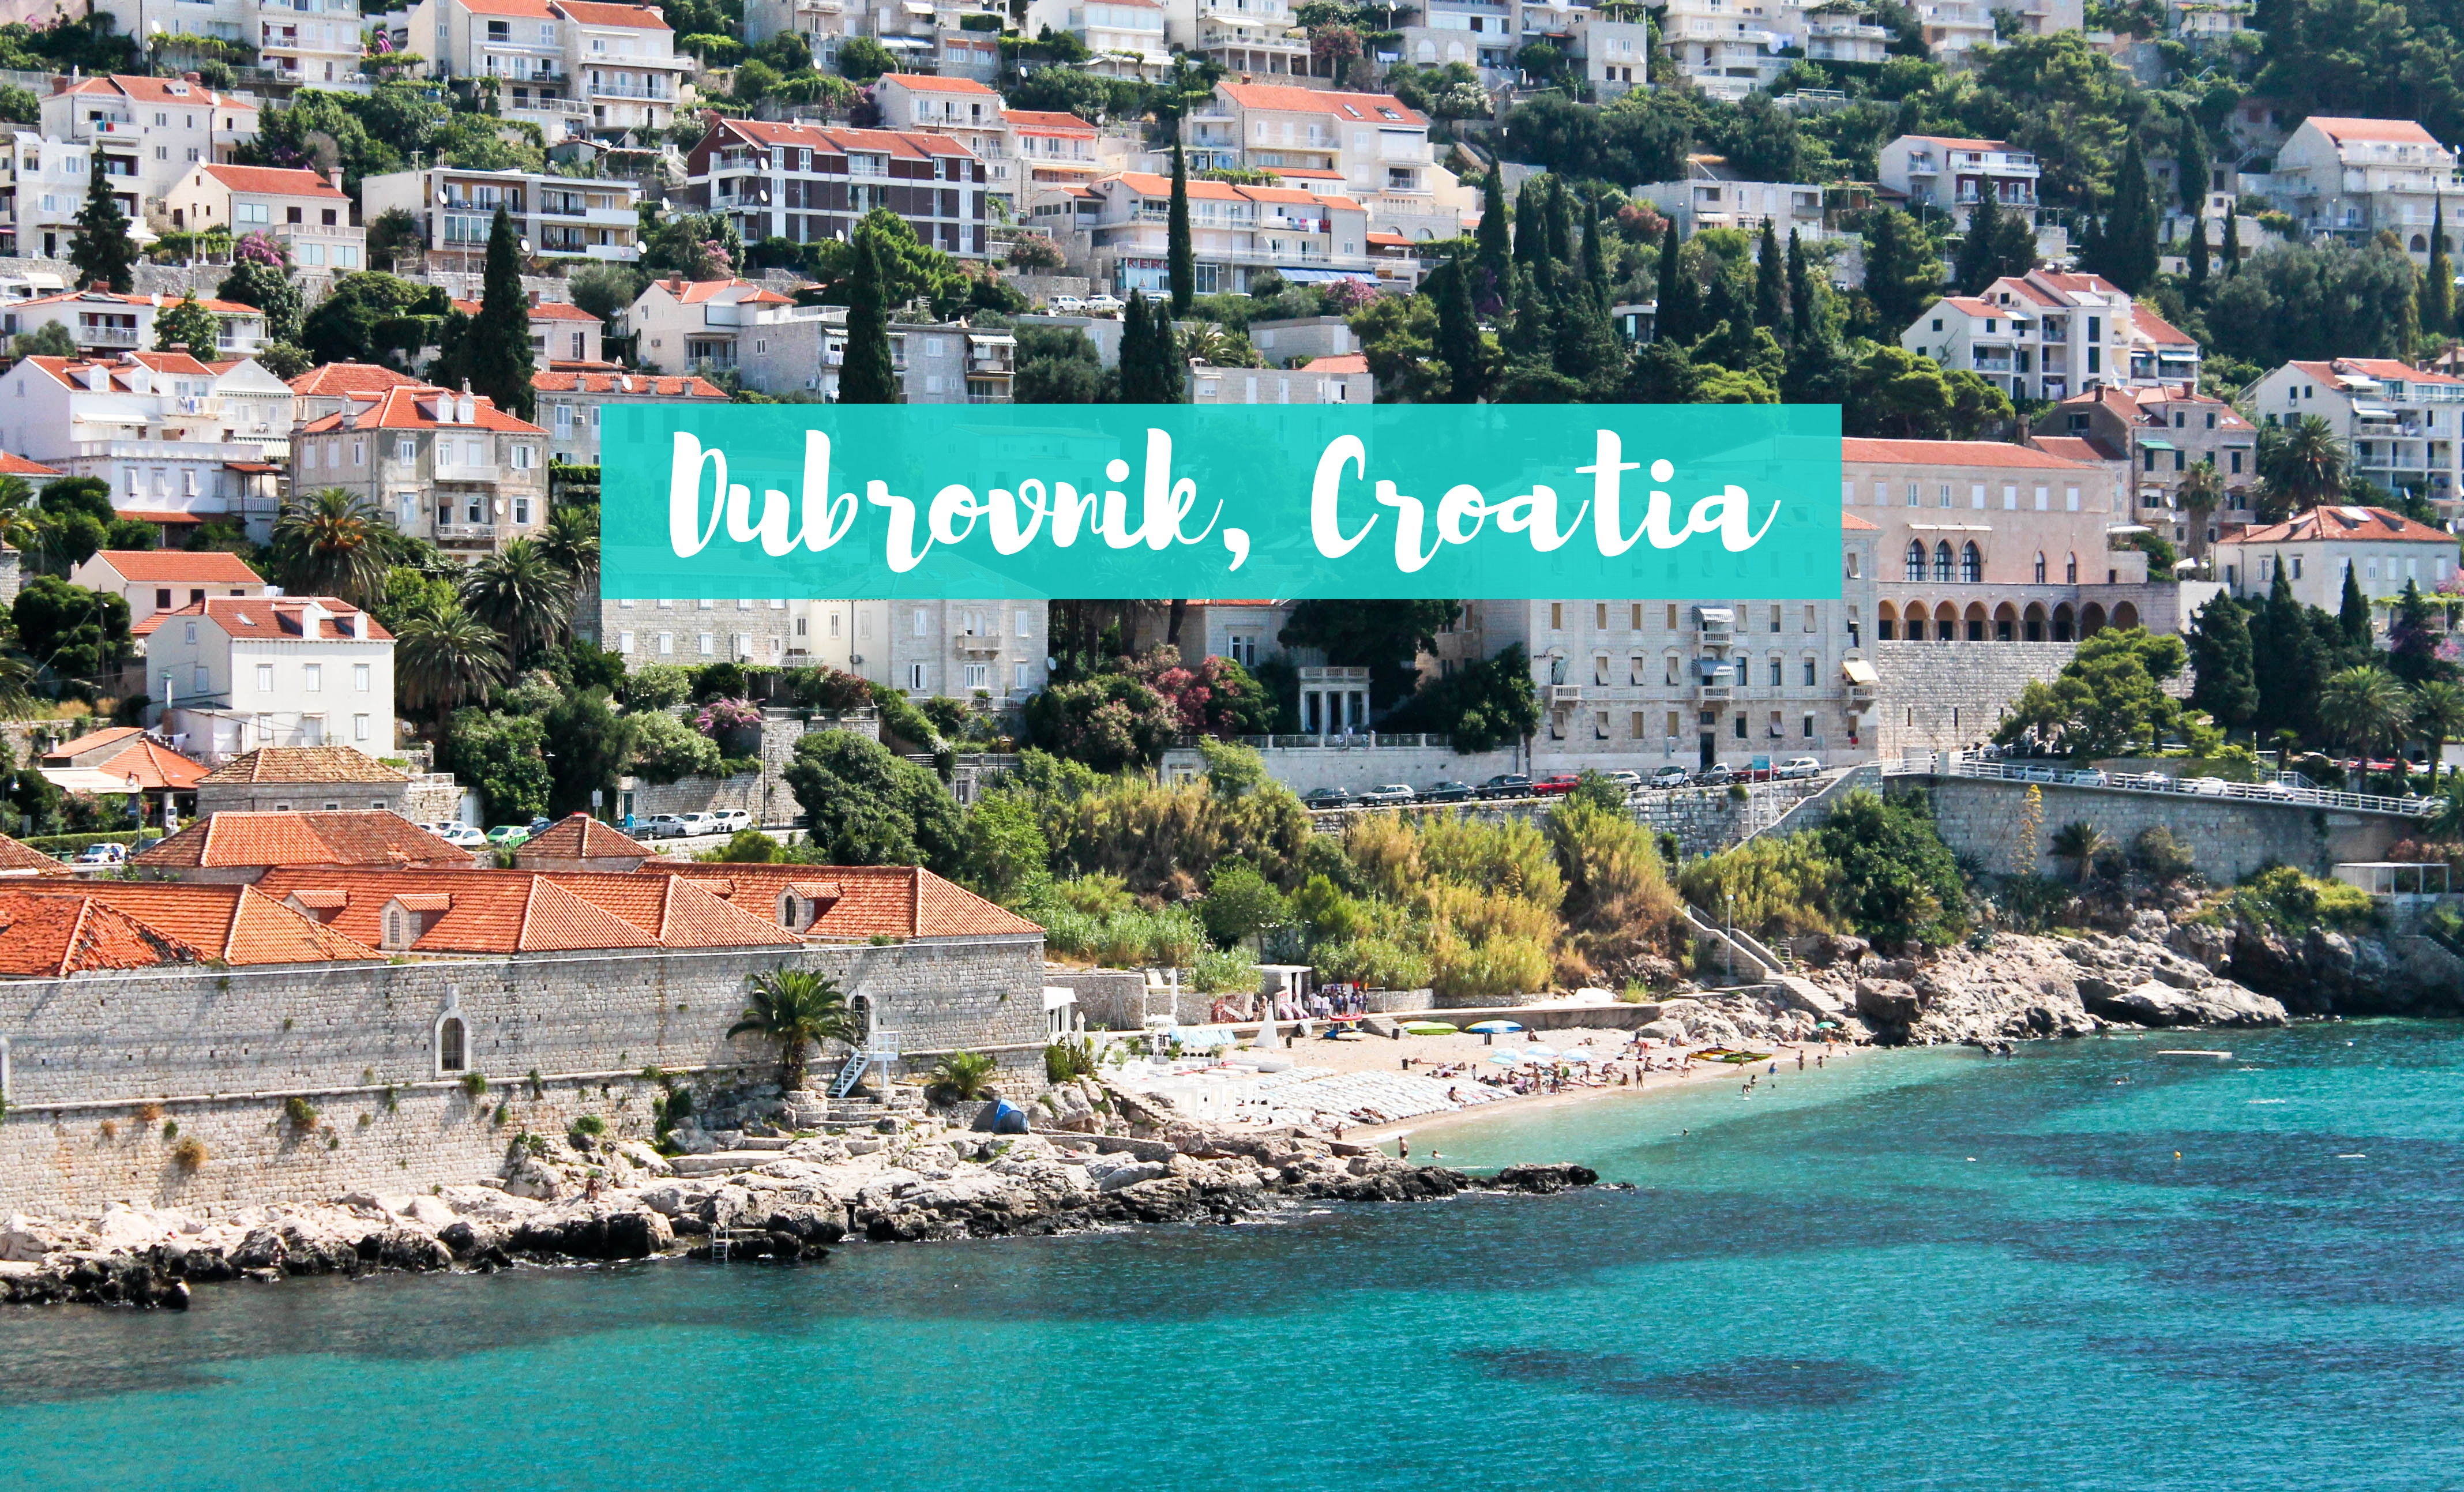 dubrovnik cover photo